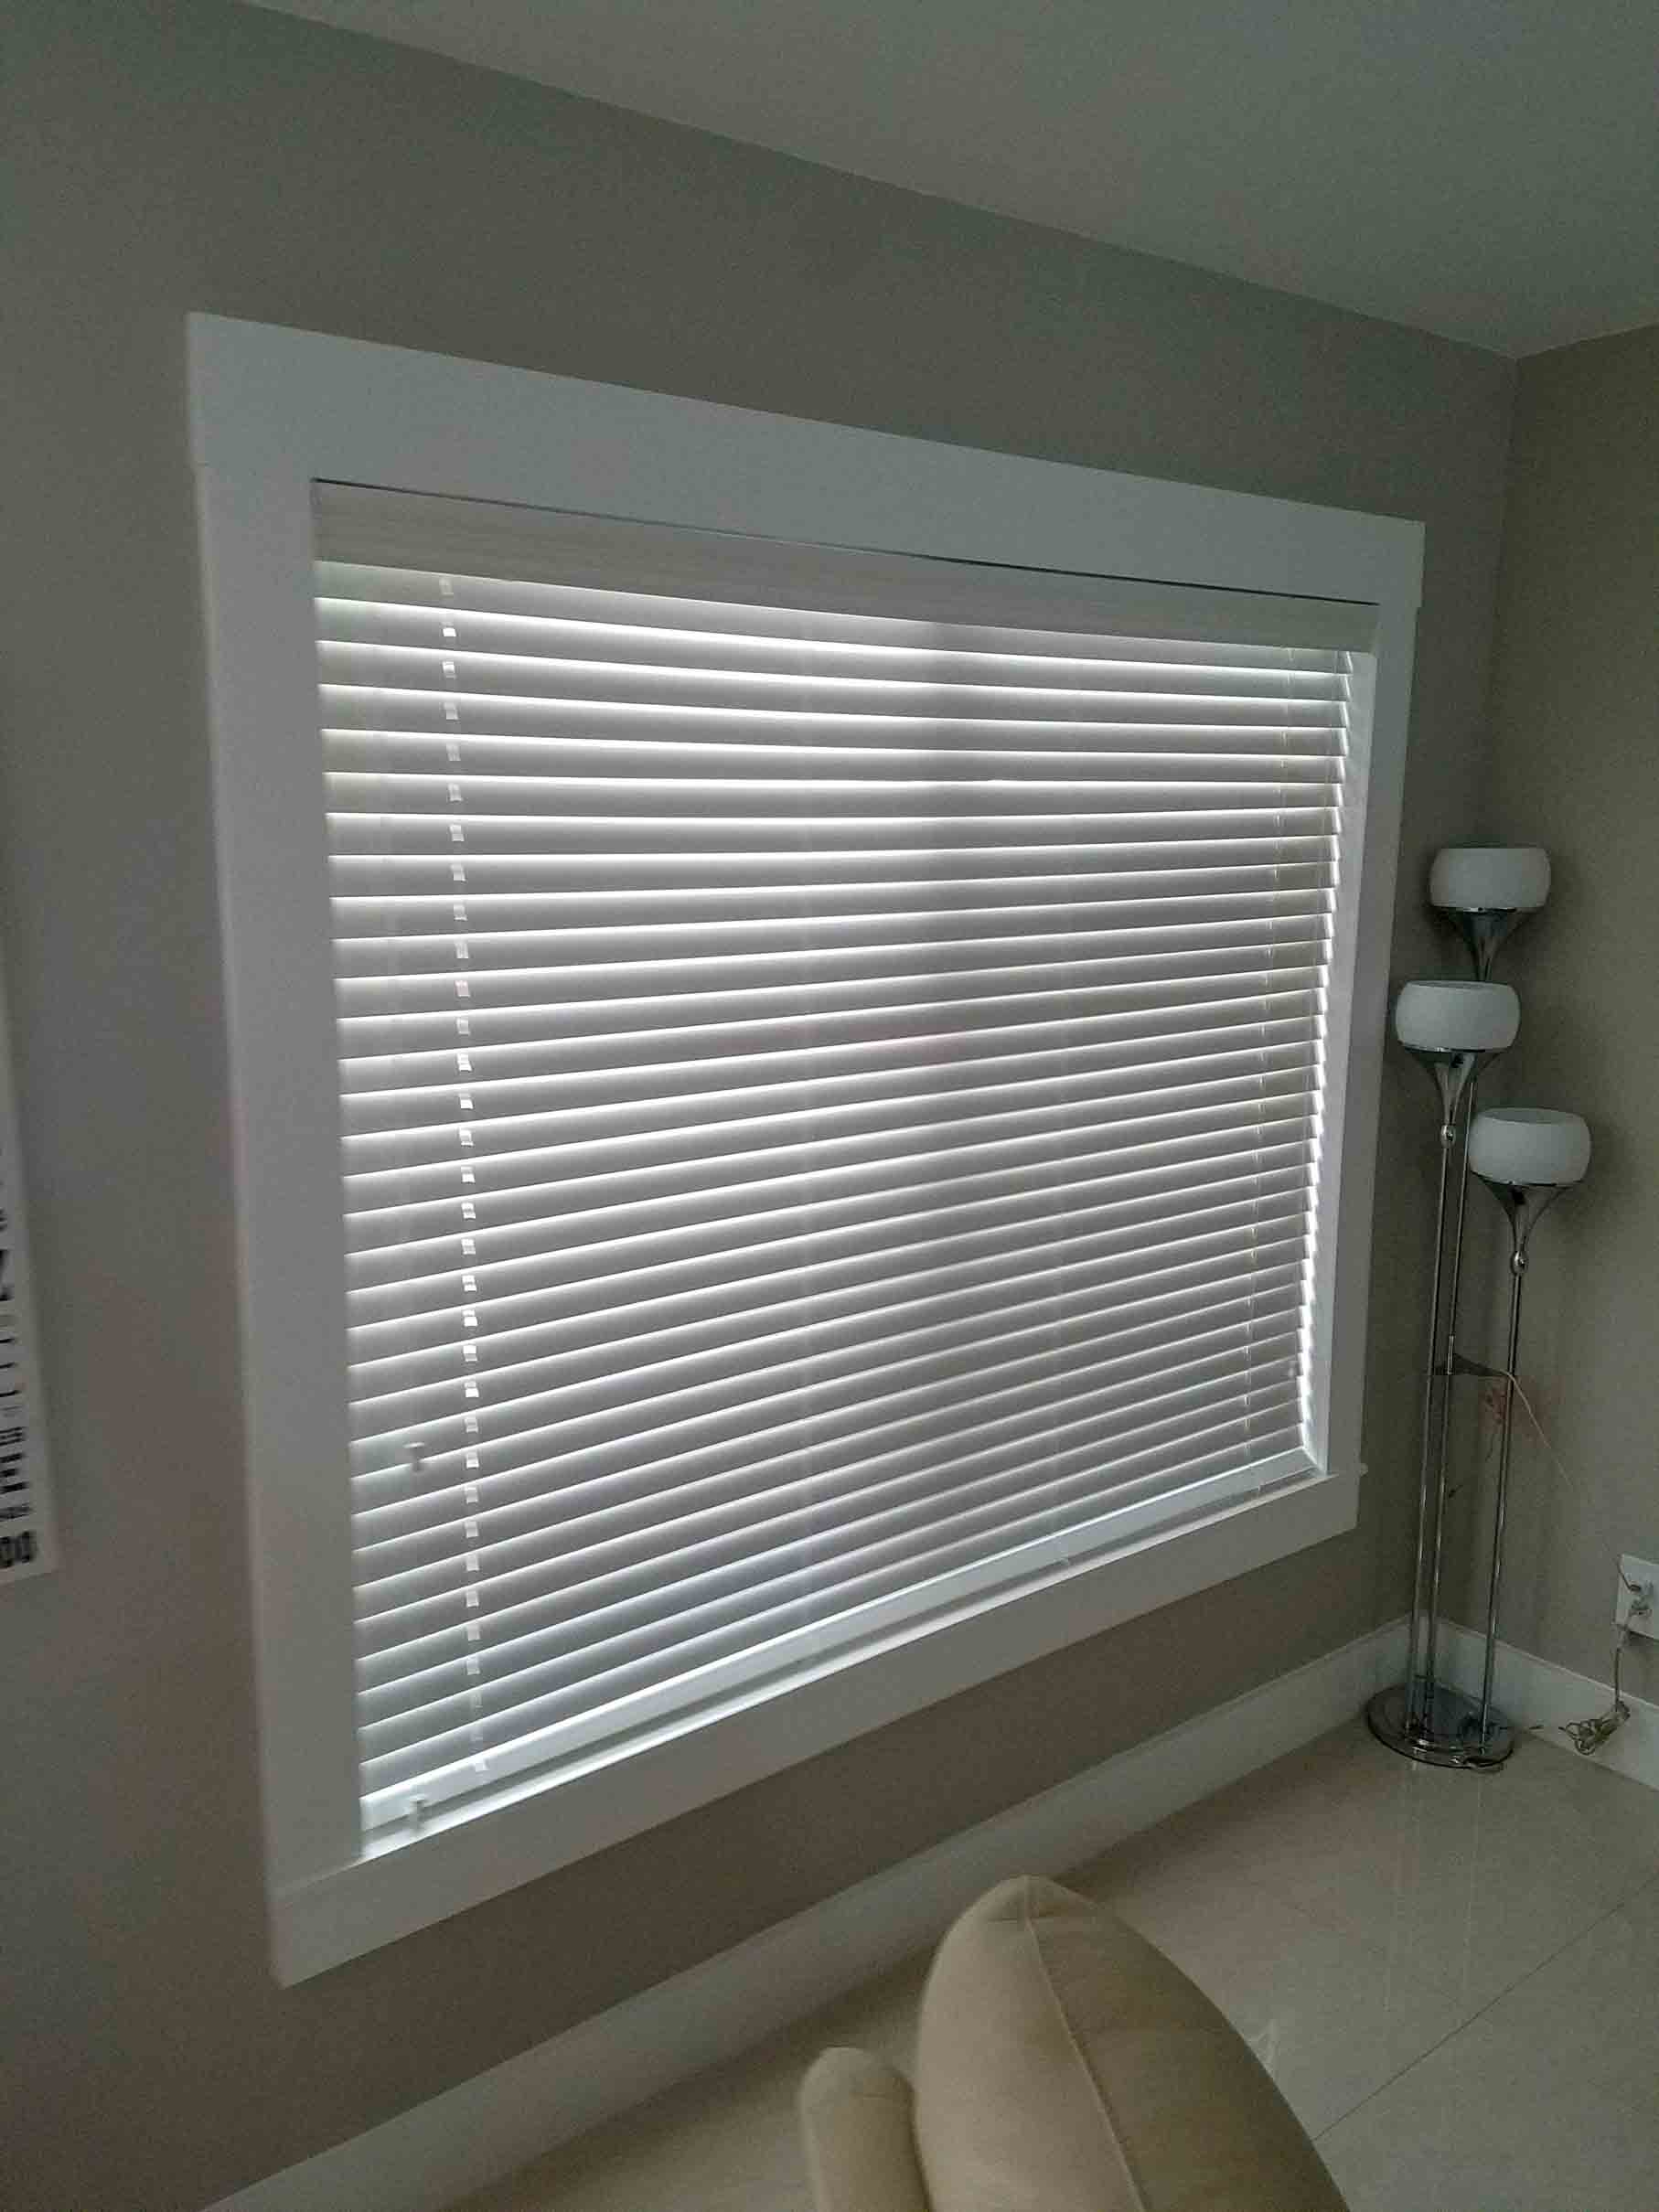 wood blinds gallery WOOD BLINDS GALLERY 20170914 130834